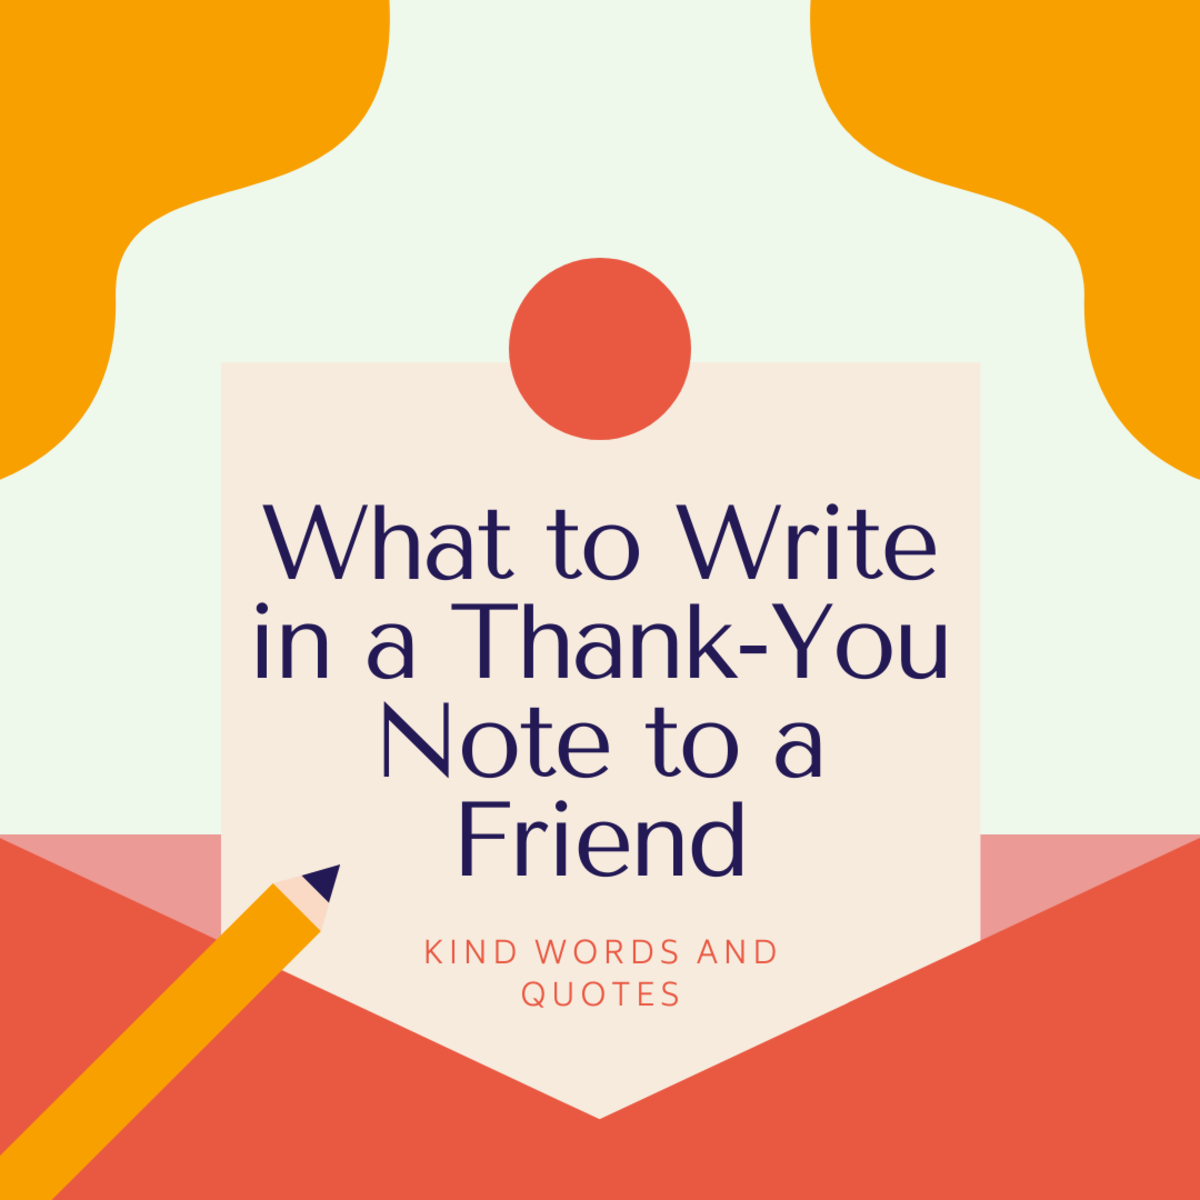 If you're struggling to find the words to thank a friend, let this list inspire you.